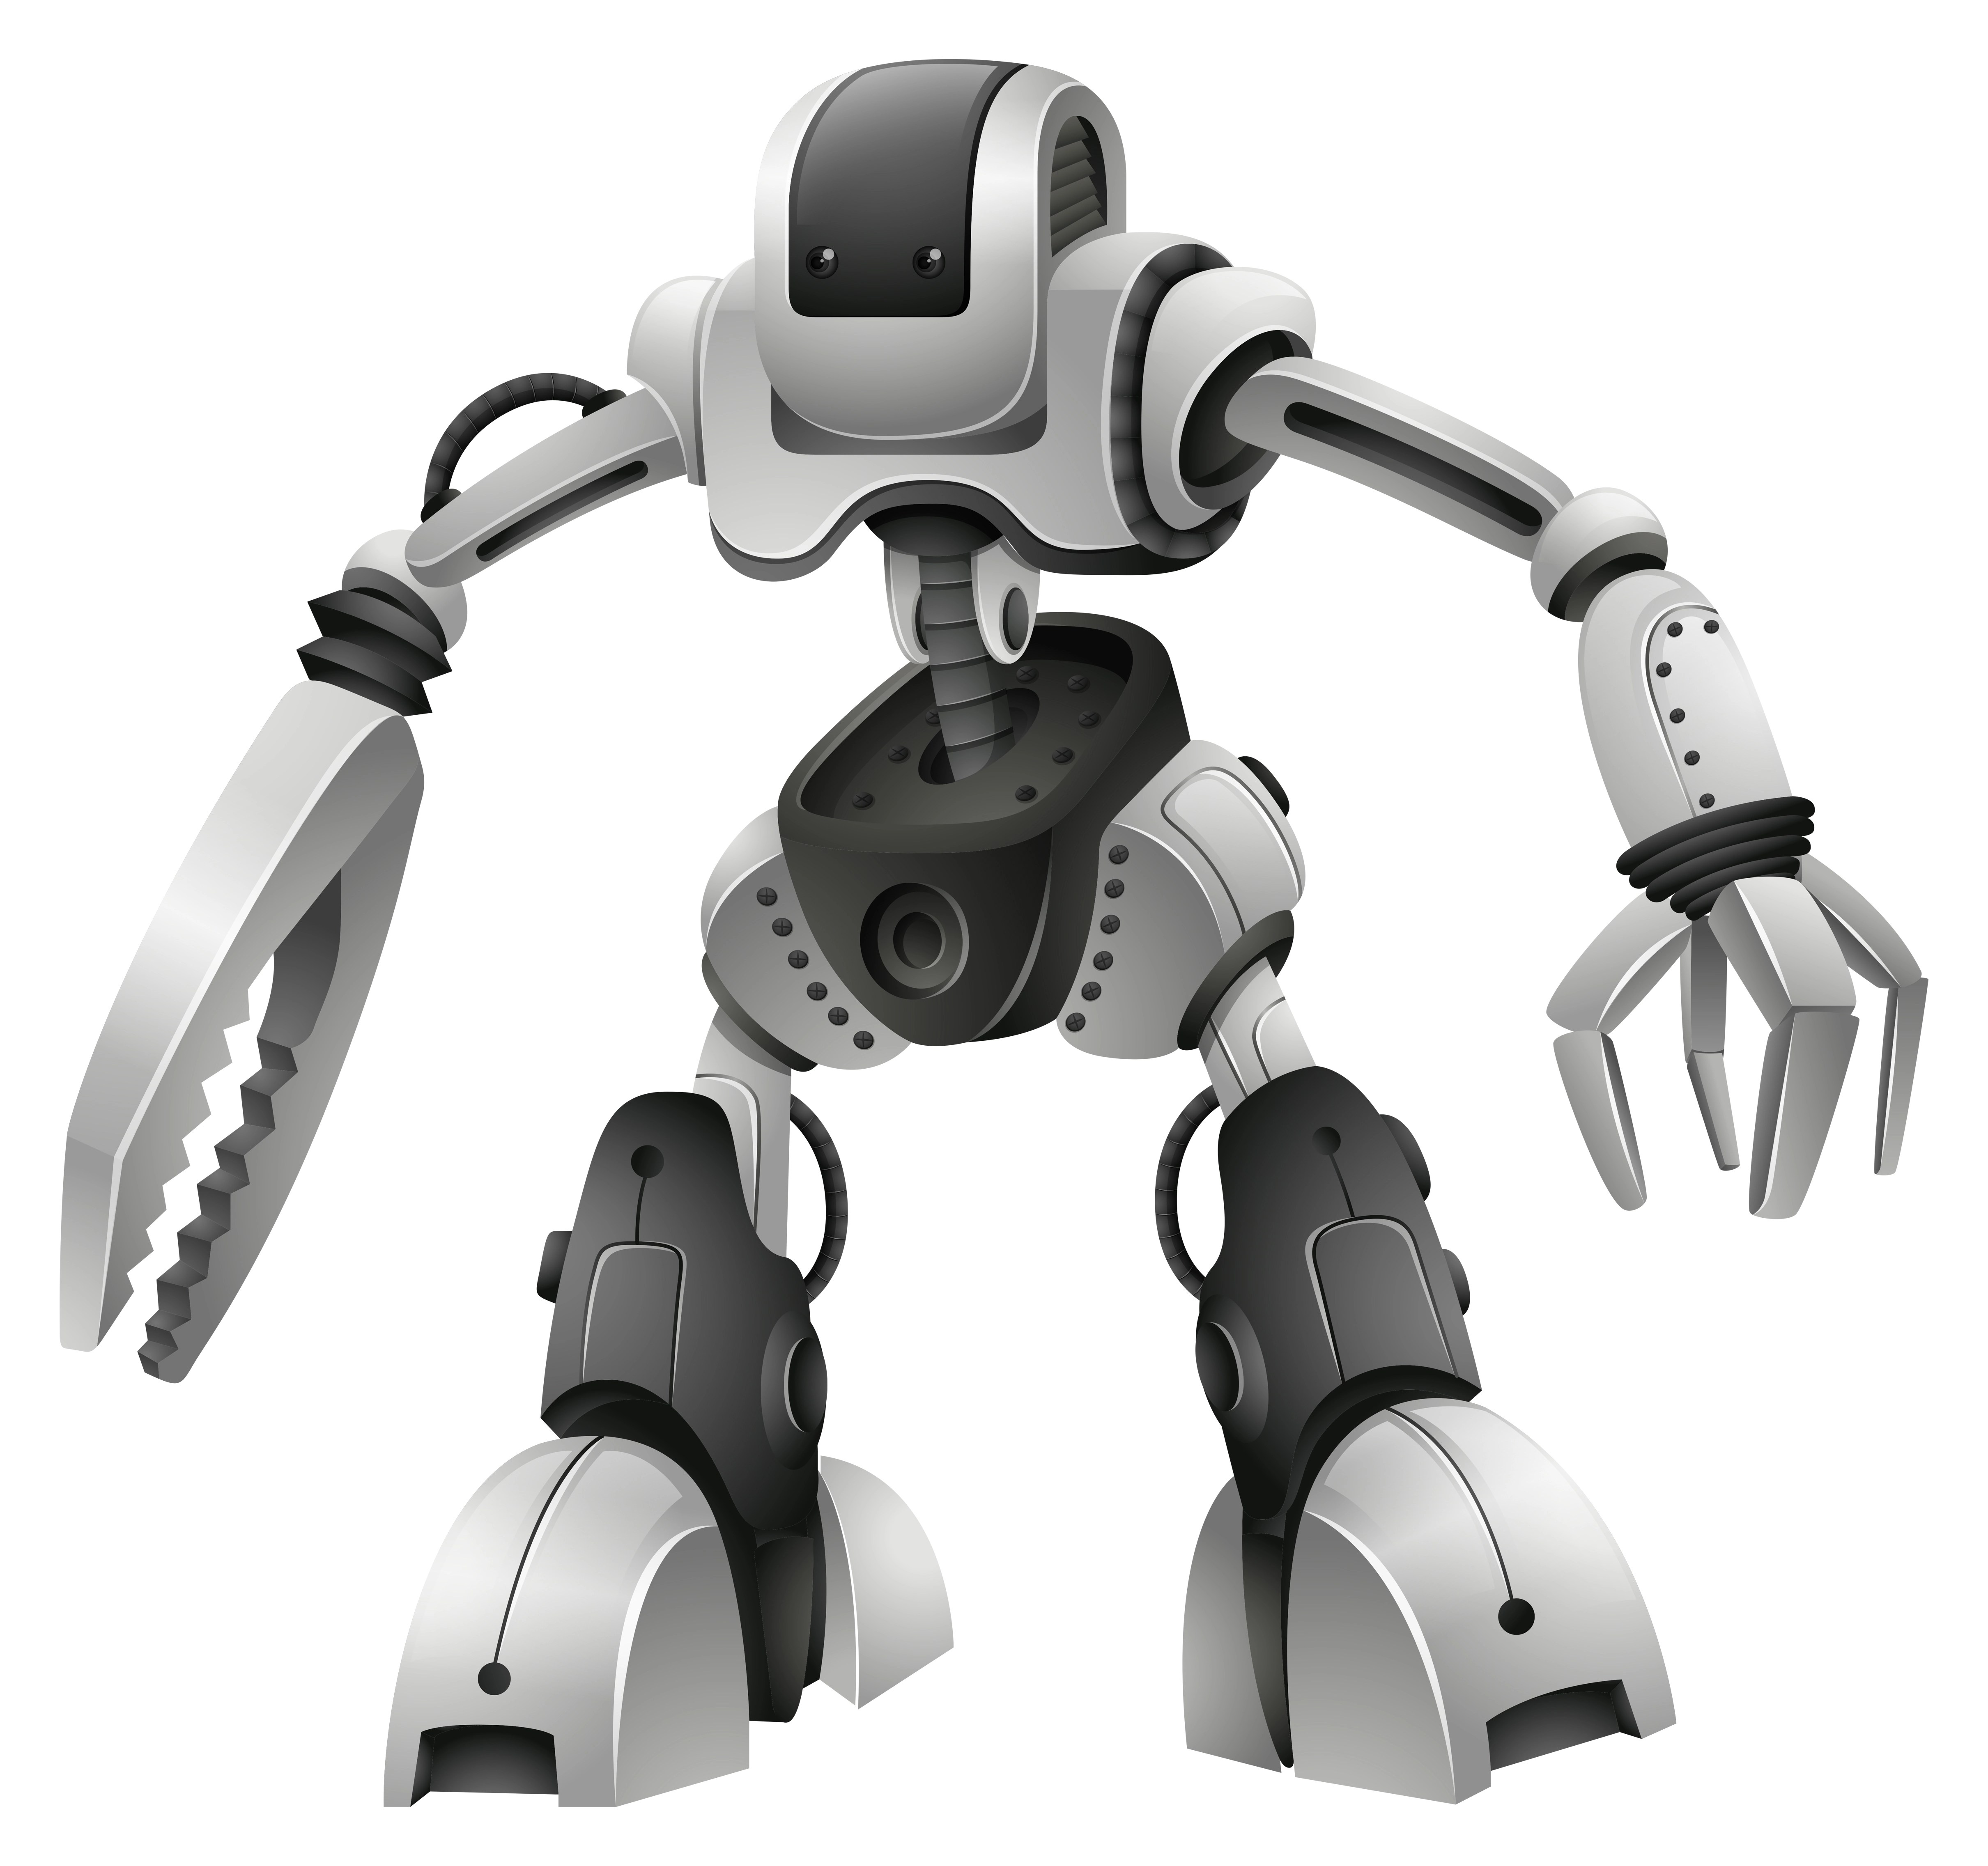 Robot Design With Weapon Hands